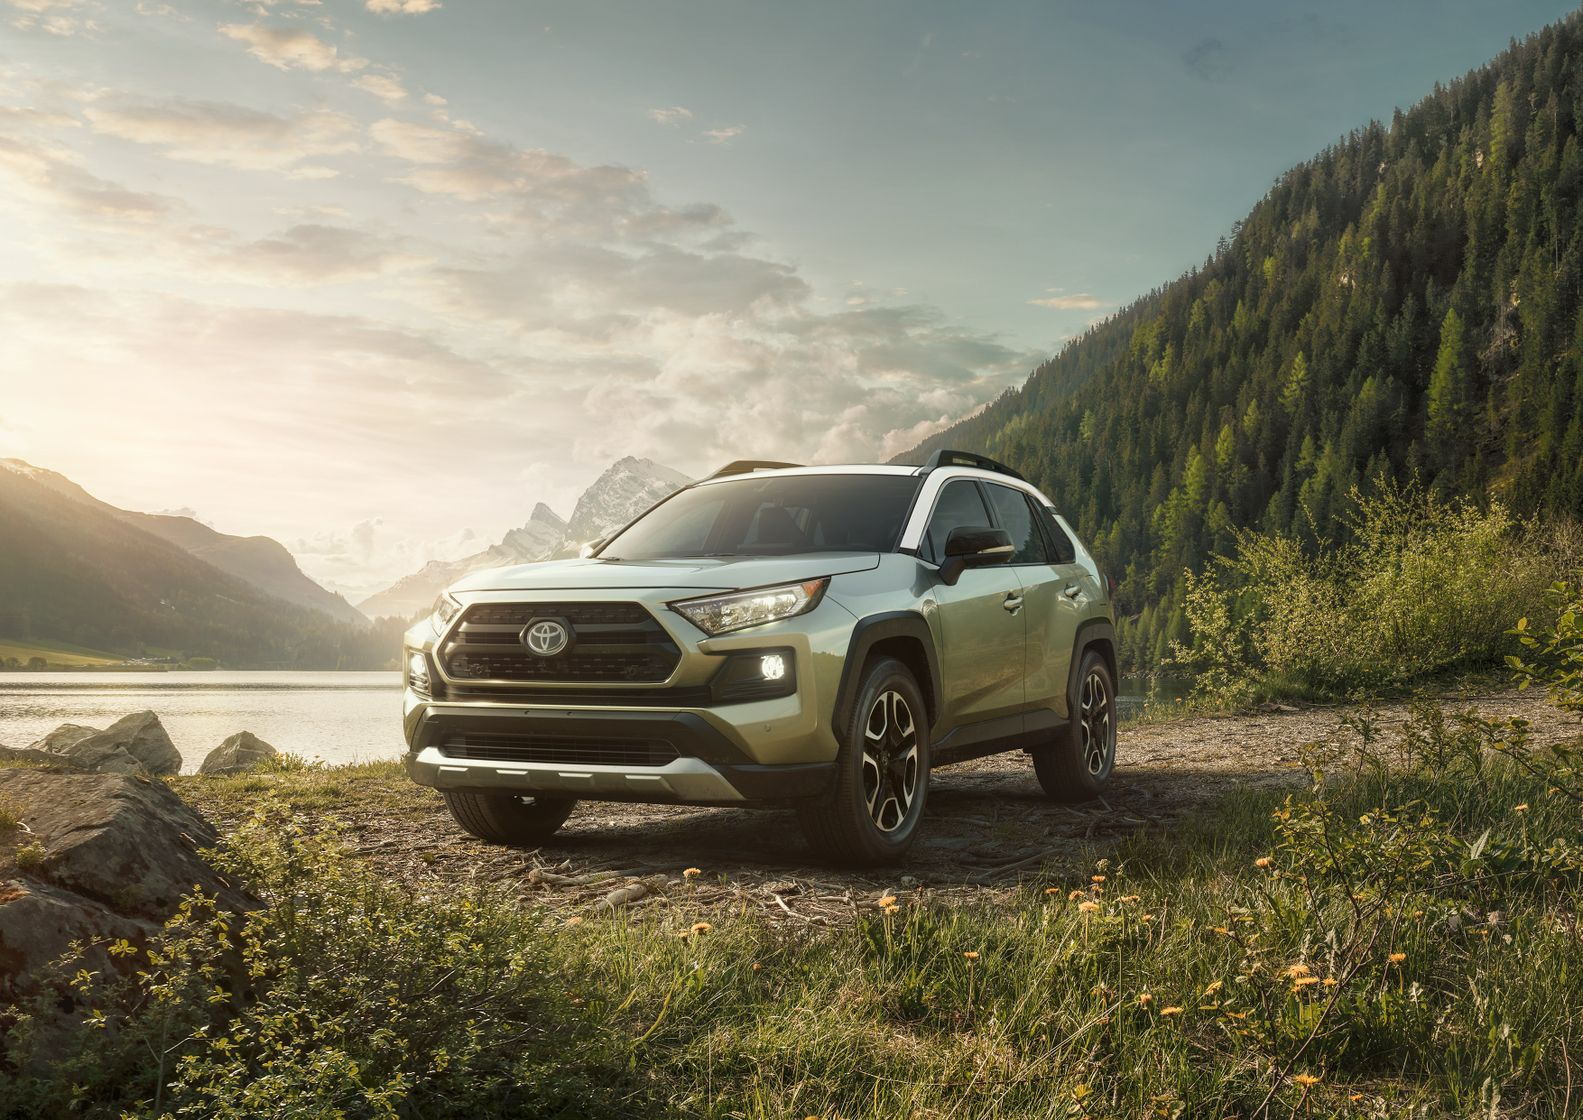 2019 Toyota Rav4 Consumer Reviews Cars Com